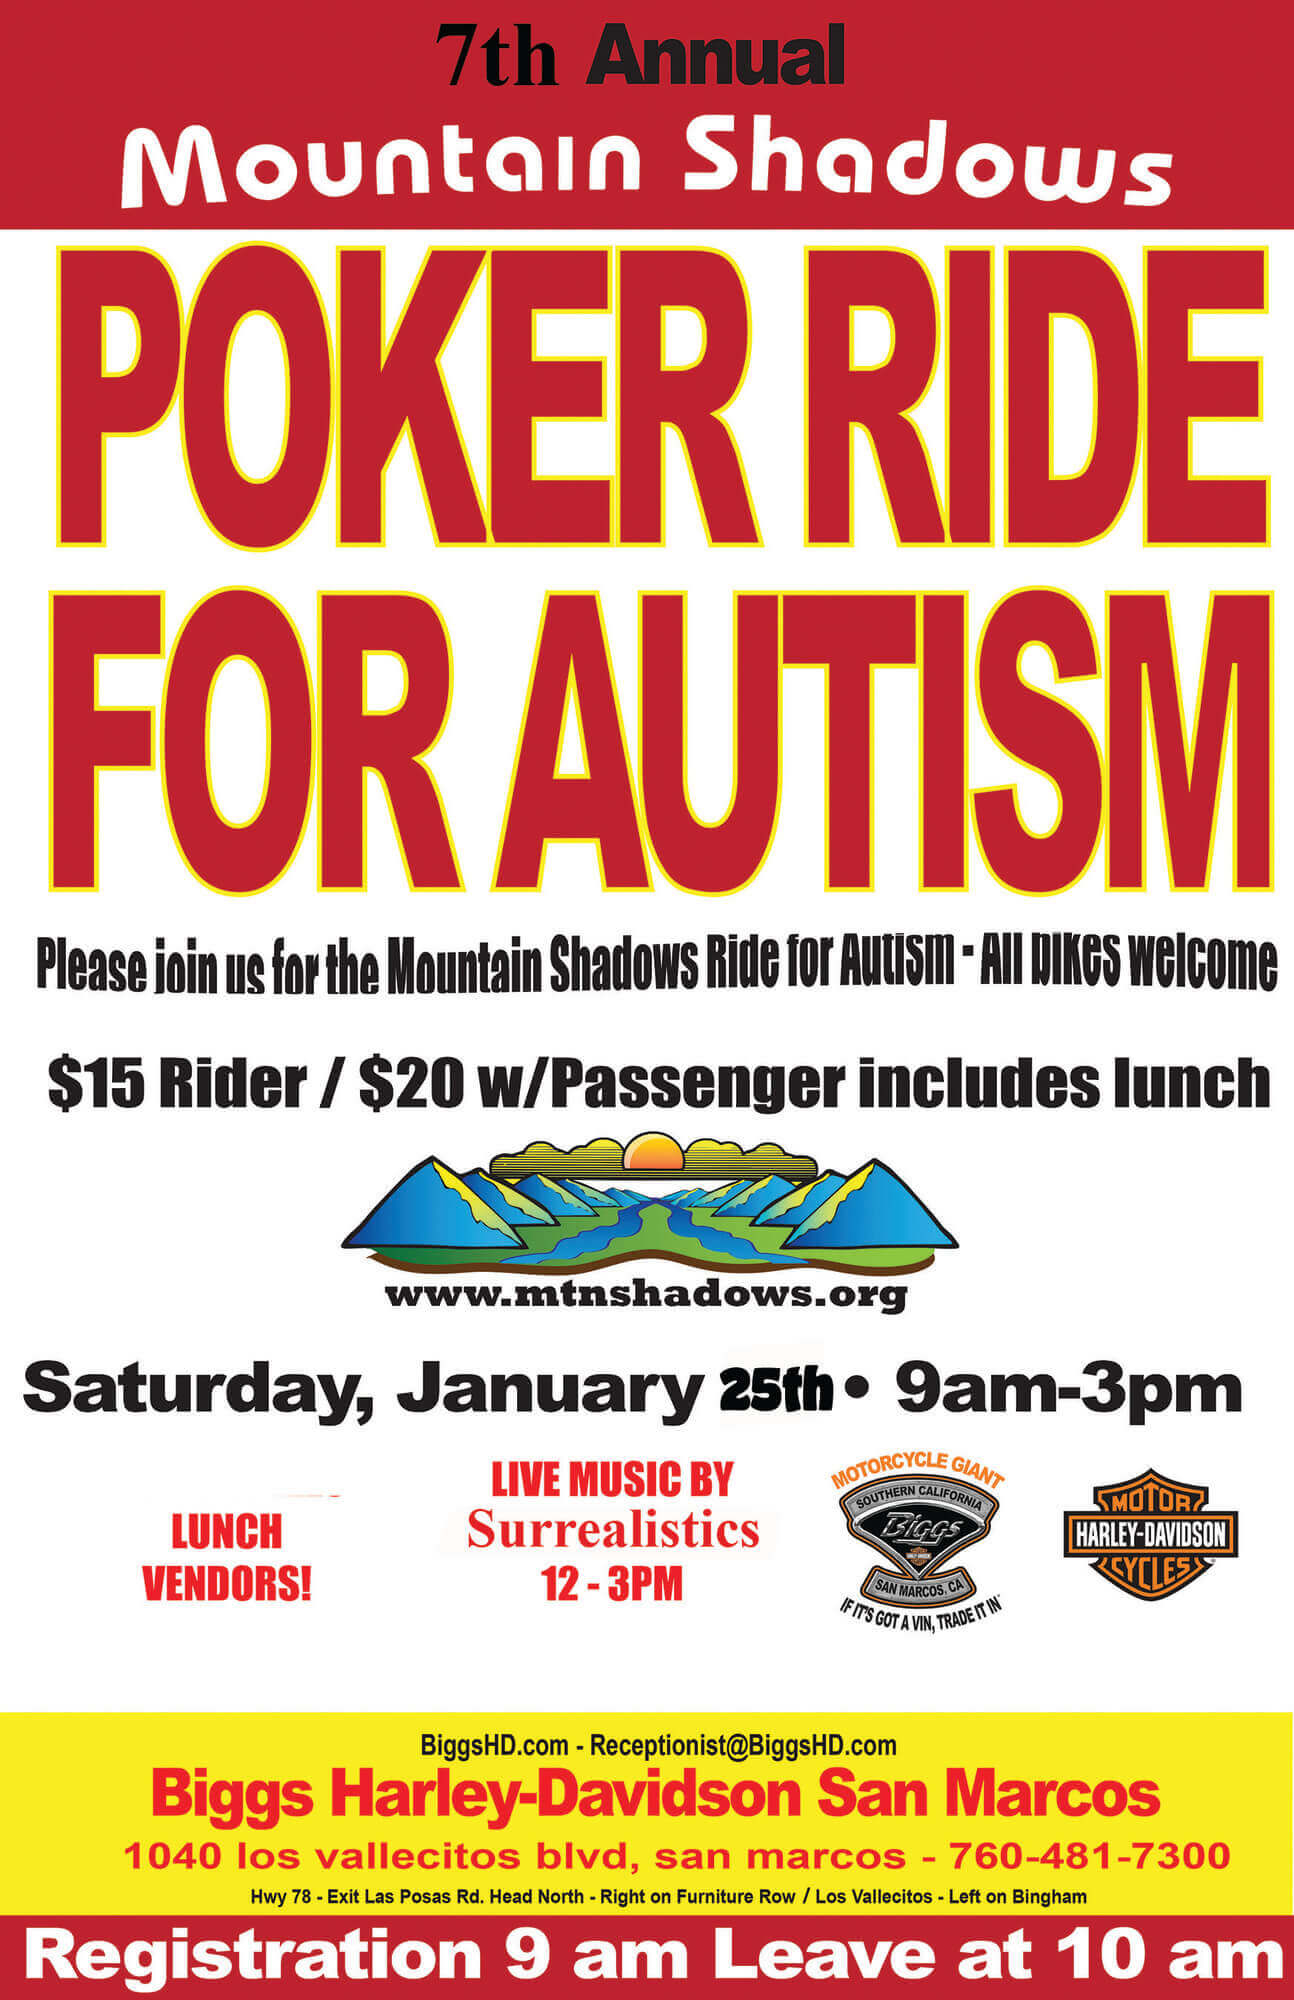 7th Annual Poker Ride For Autism